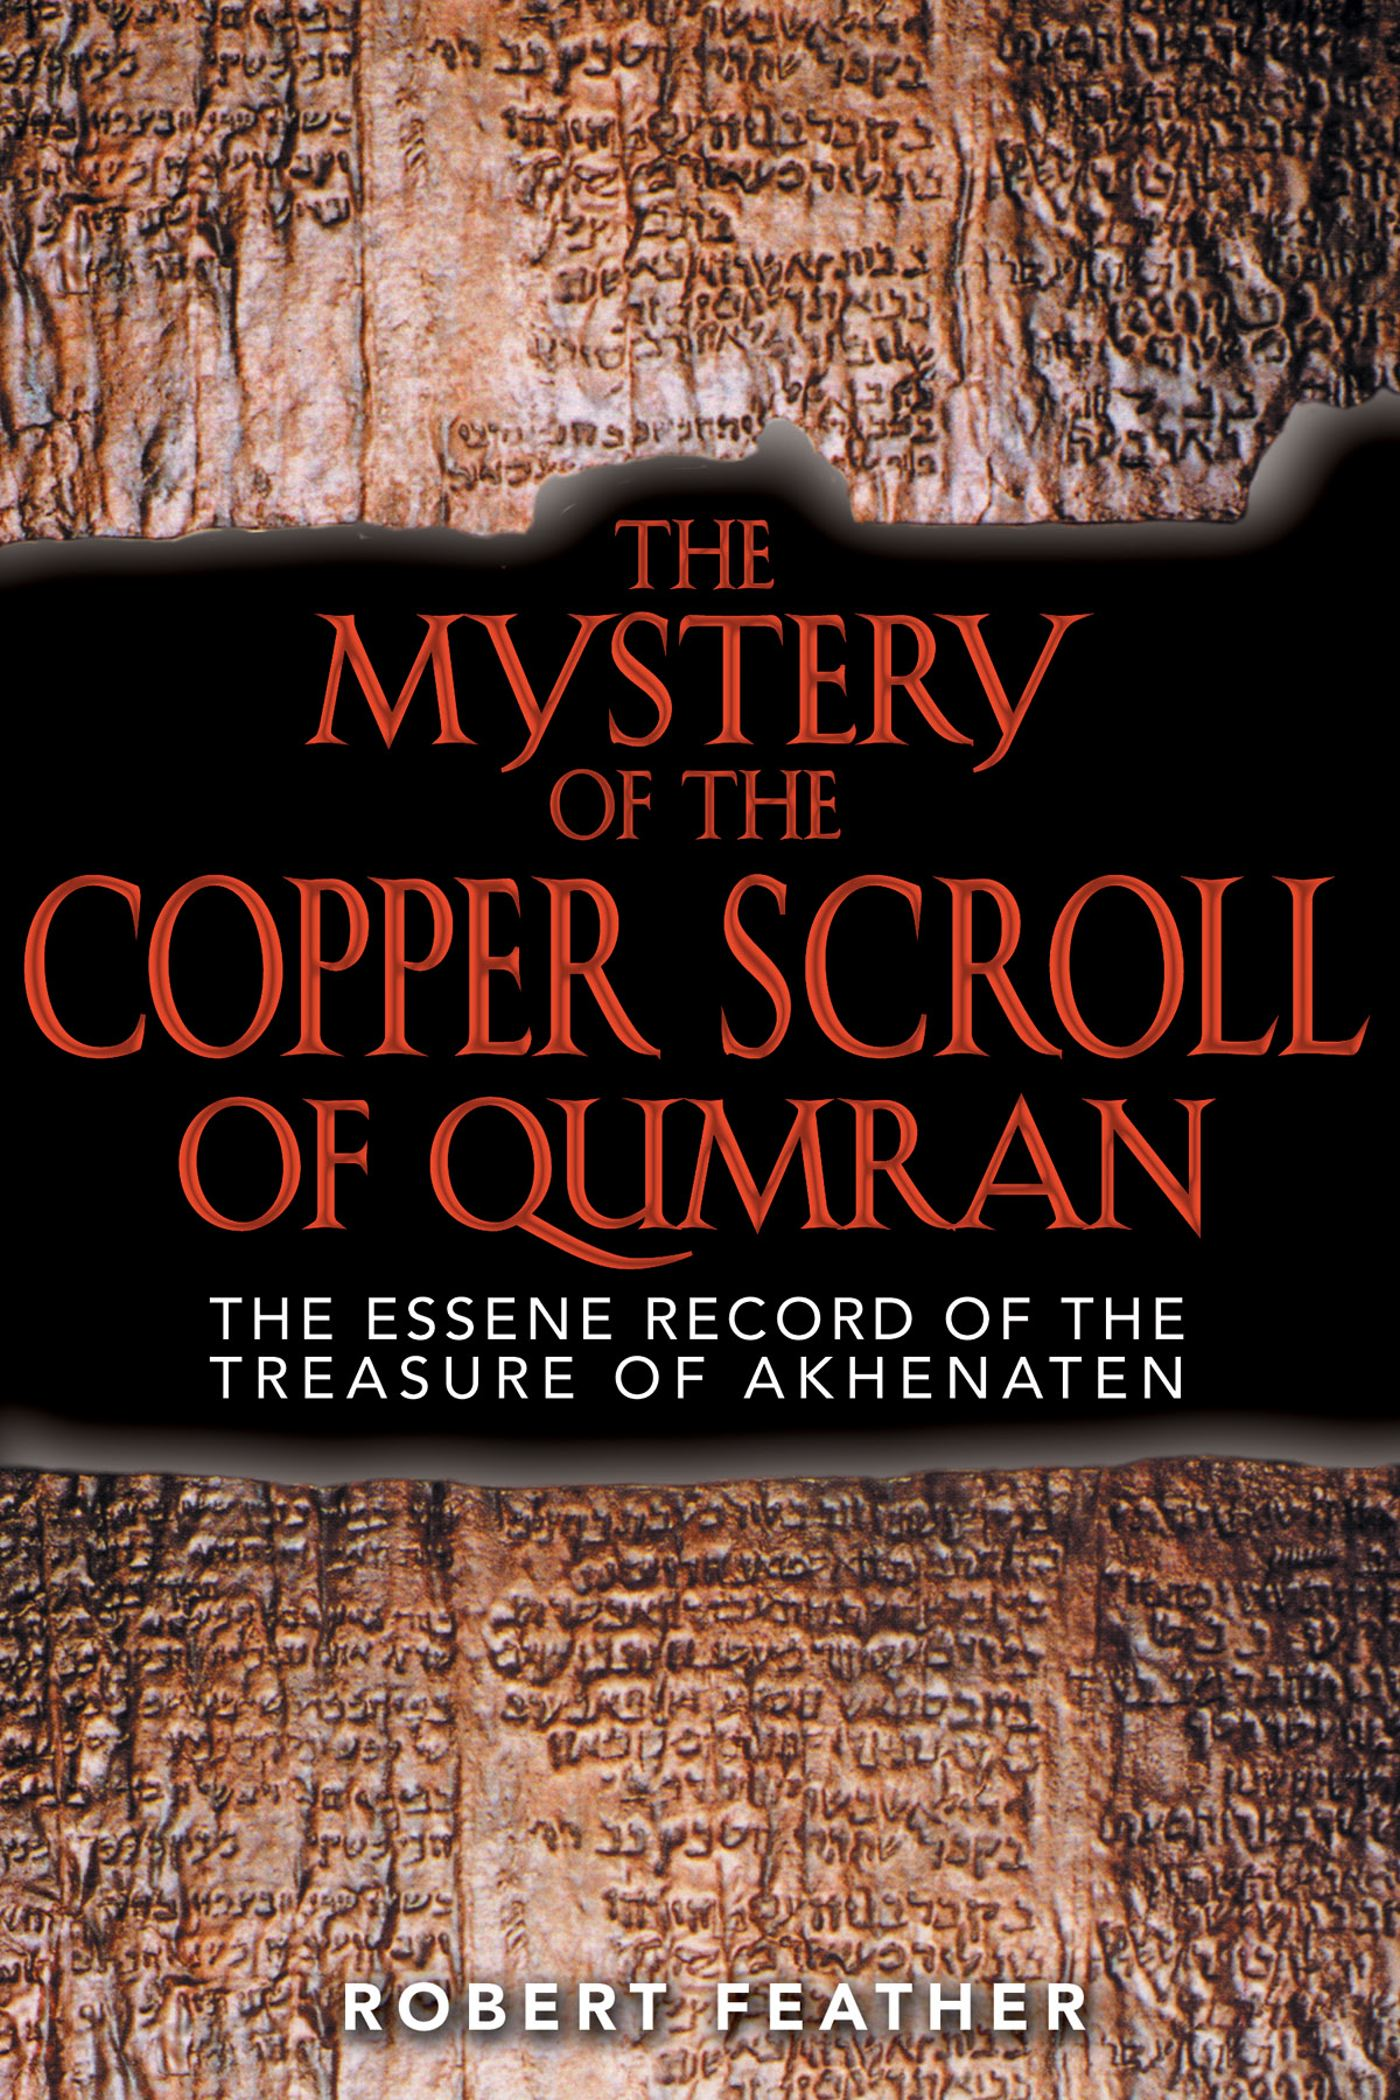 The mystery of the copper scroll of qumran 9781591430148 hr